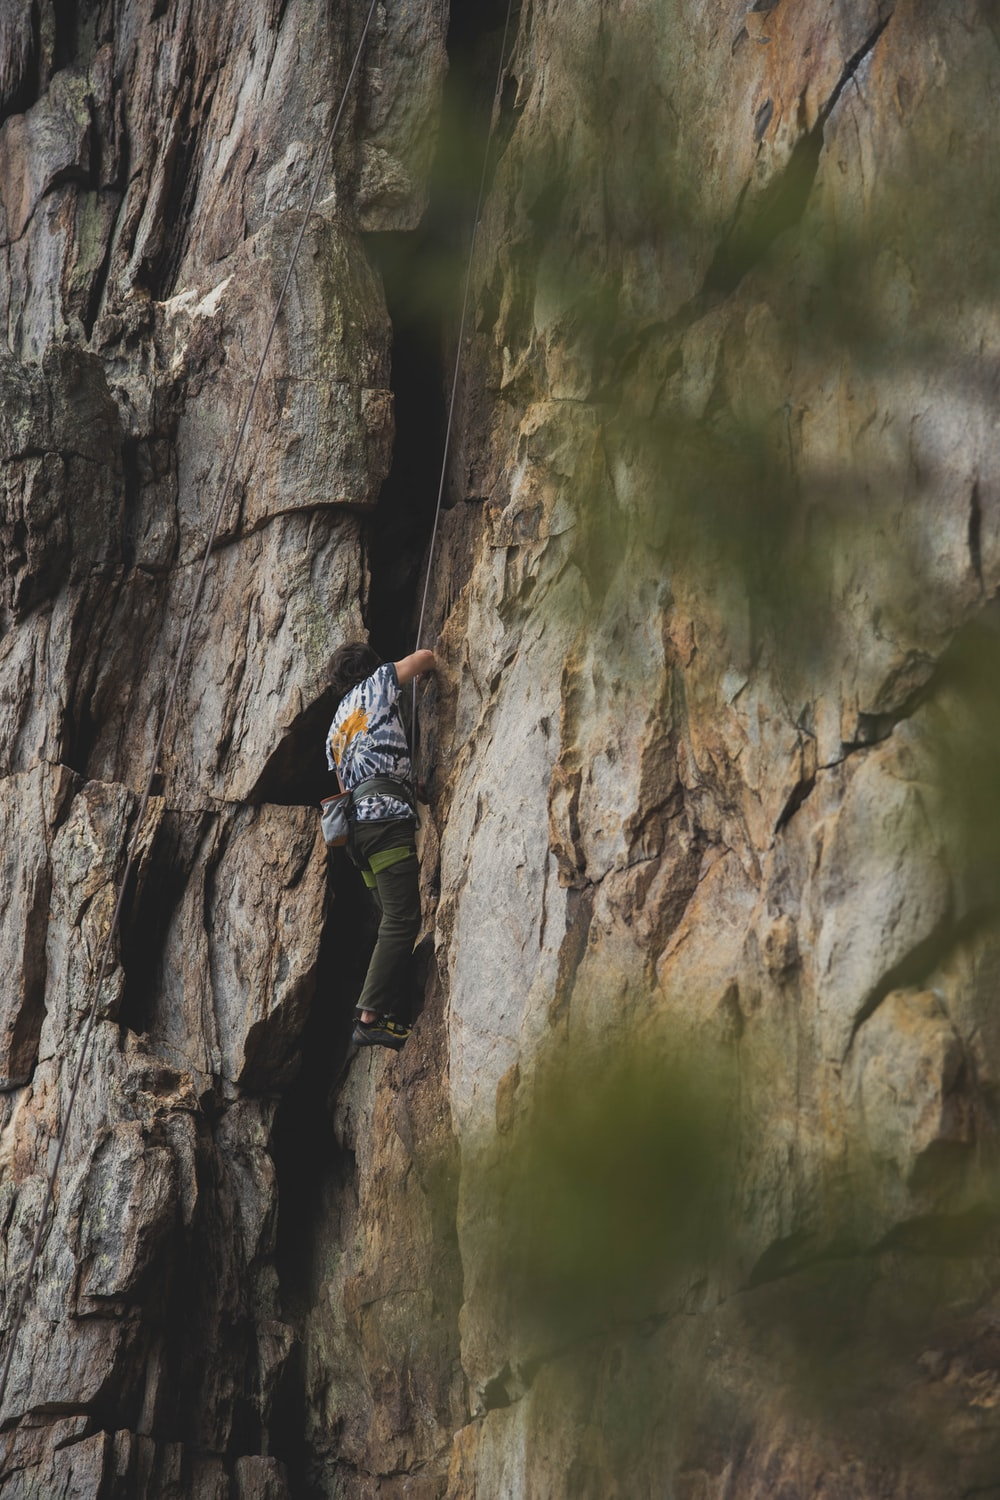 man in blue jacket climbing on brown rock formation during daytime